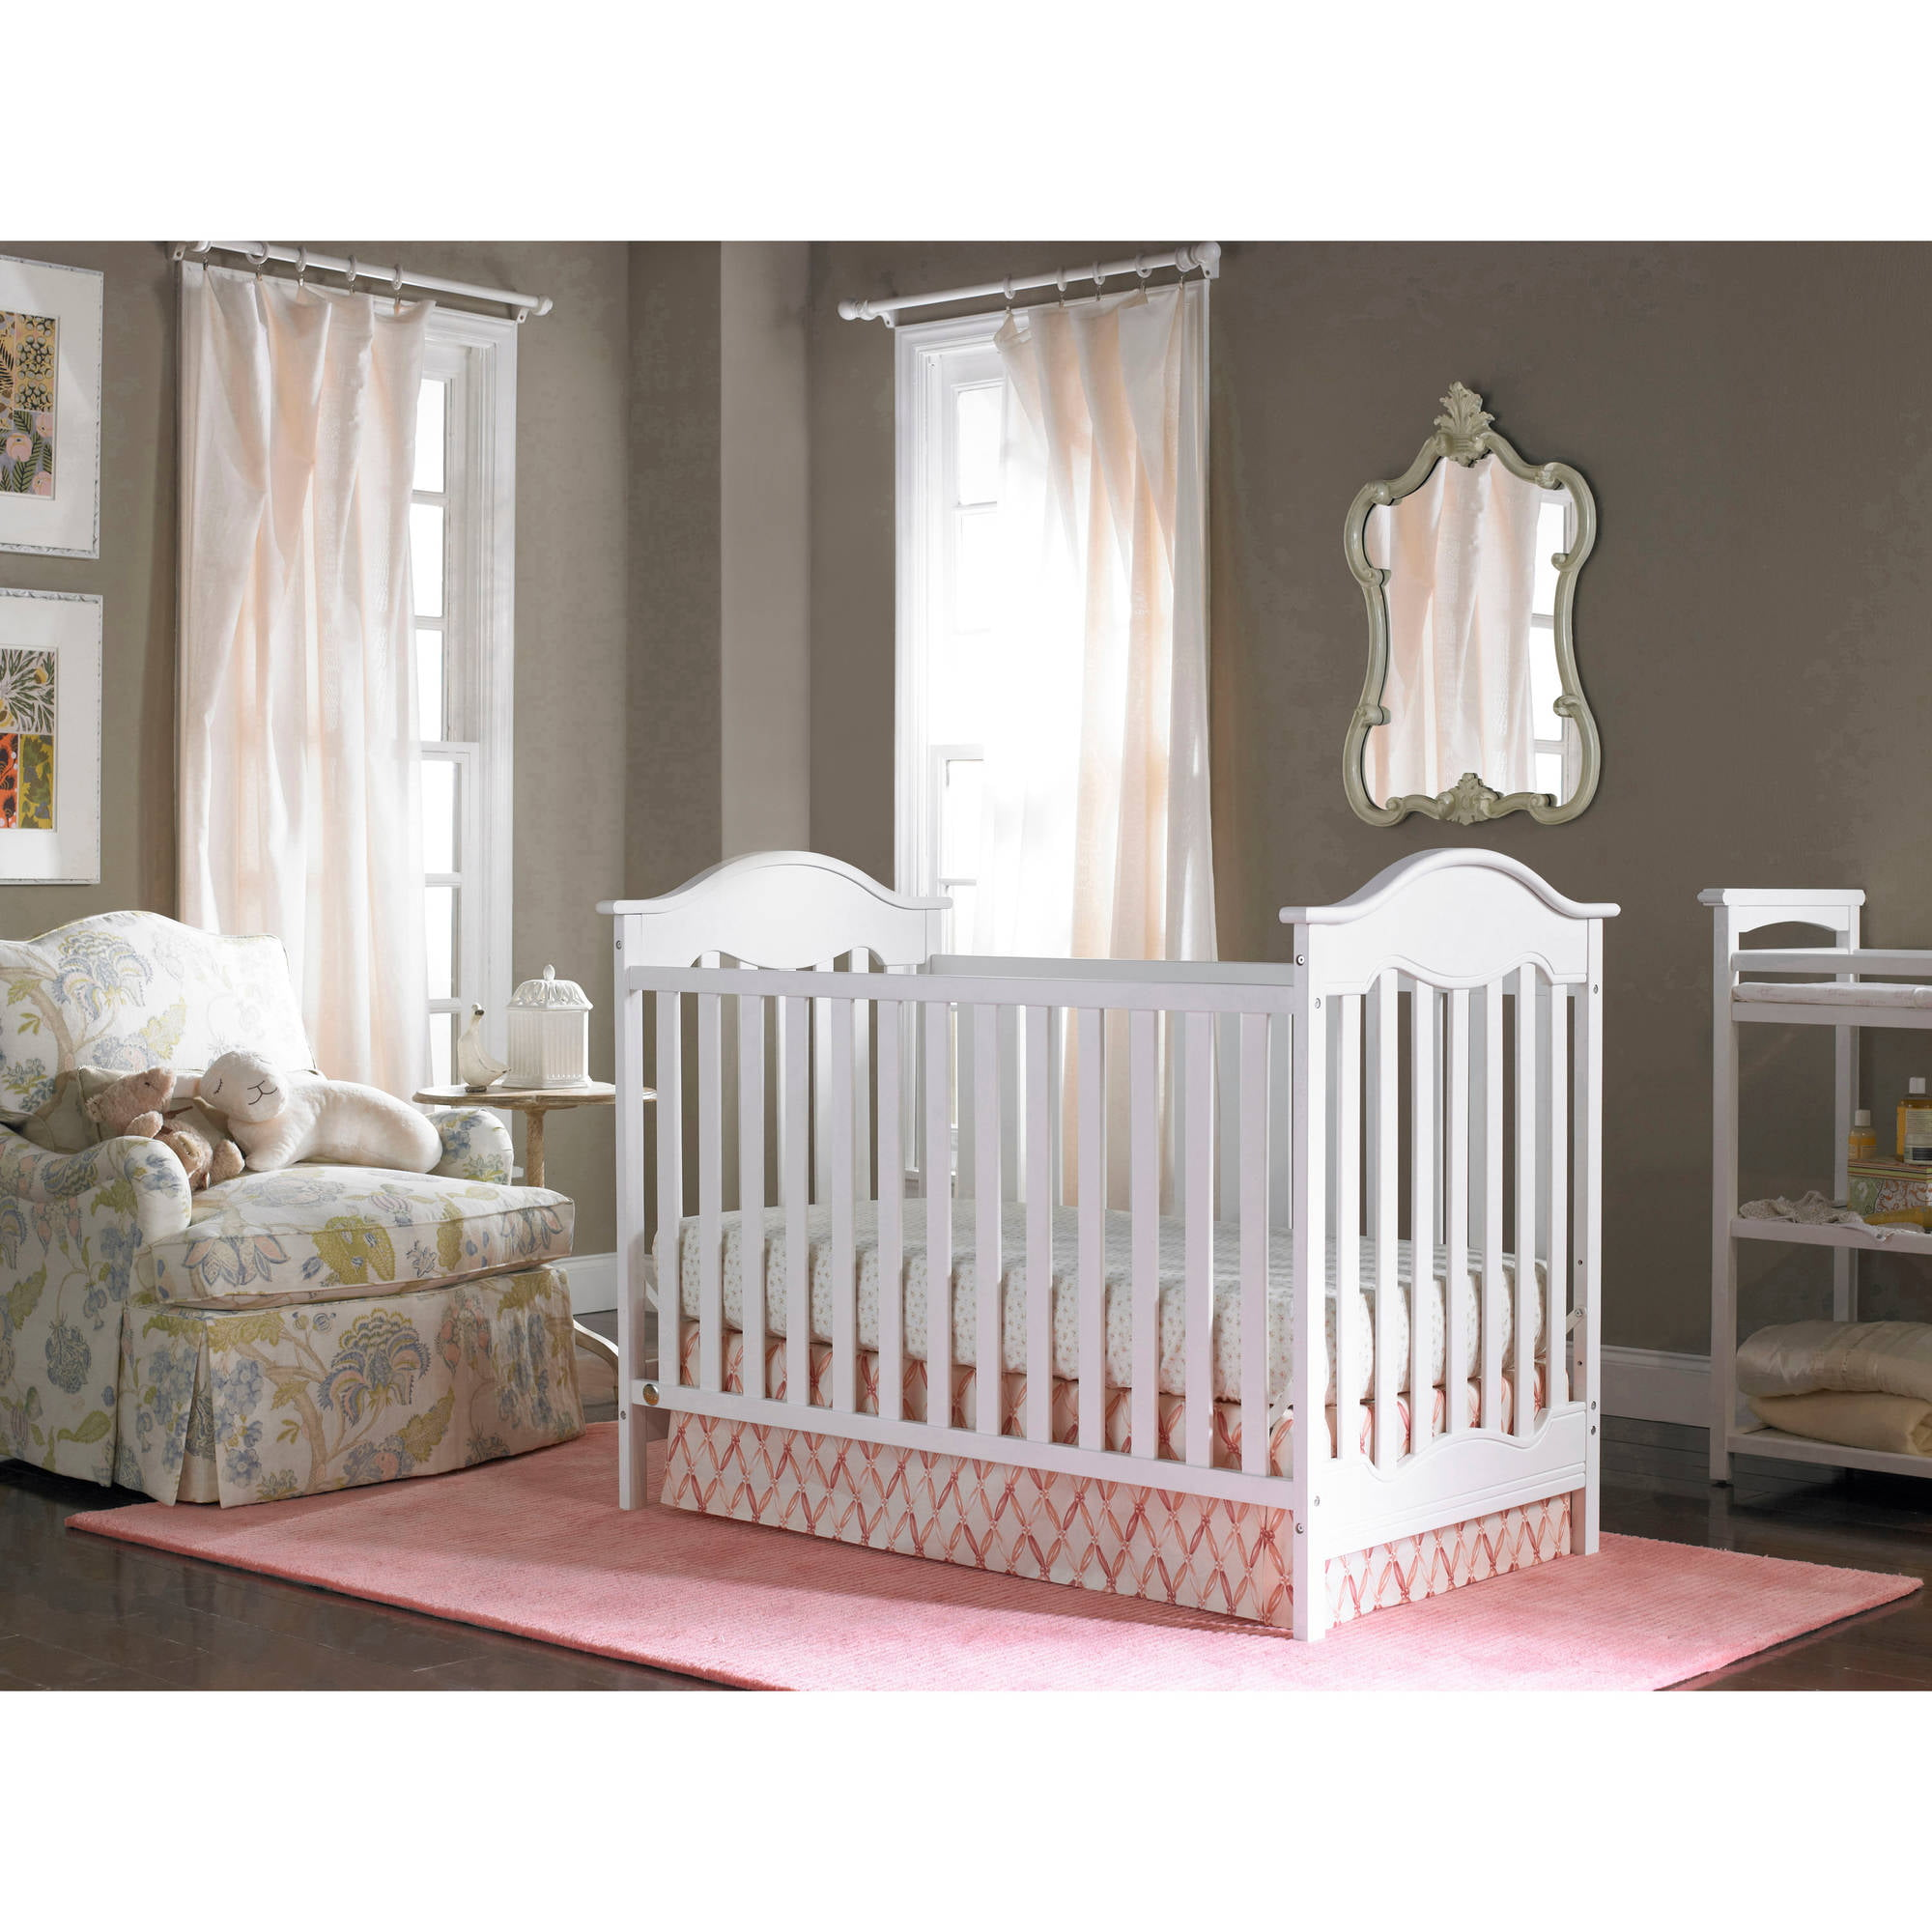 Unfinished crib for sale - Fisherprice Charlotte 3in1 Fixedside Convertible Crib